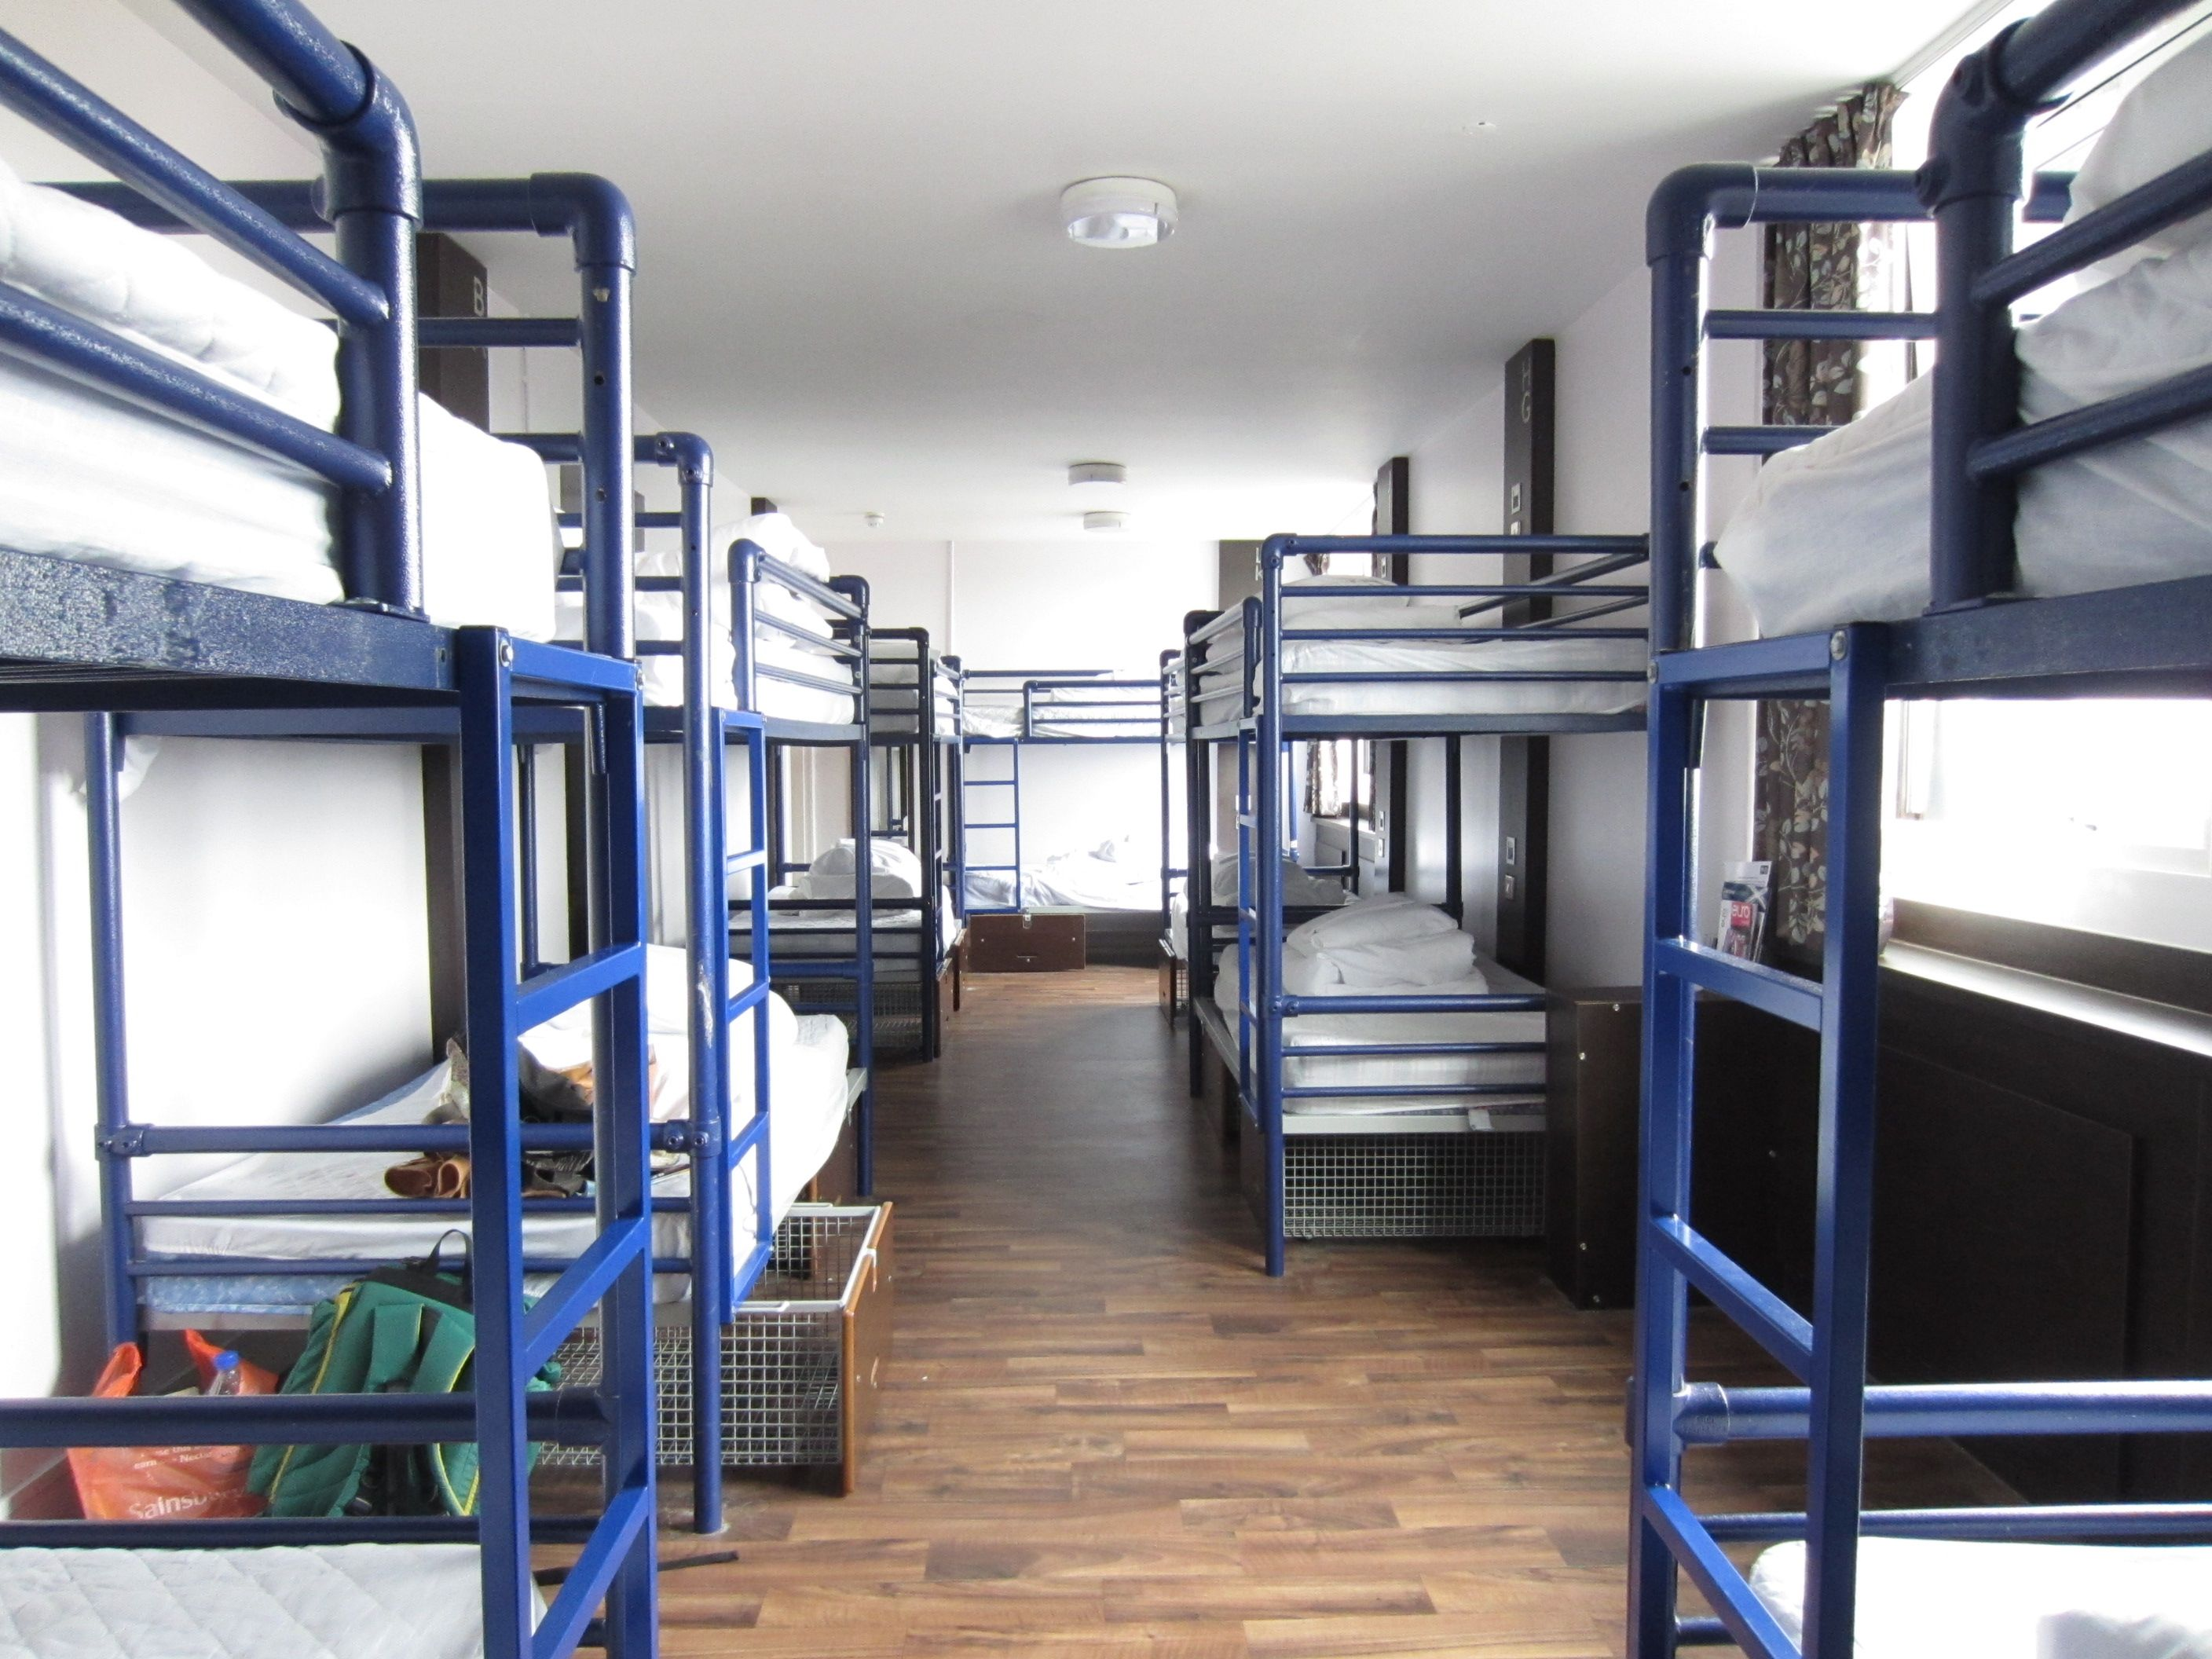 14 bed female dorm with lockers under the beds - Euro Hostel Glasgow